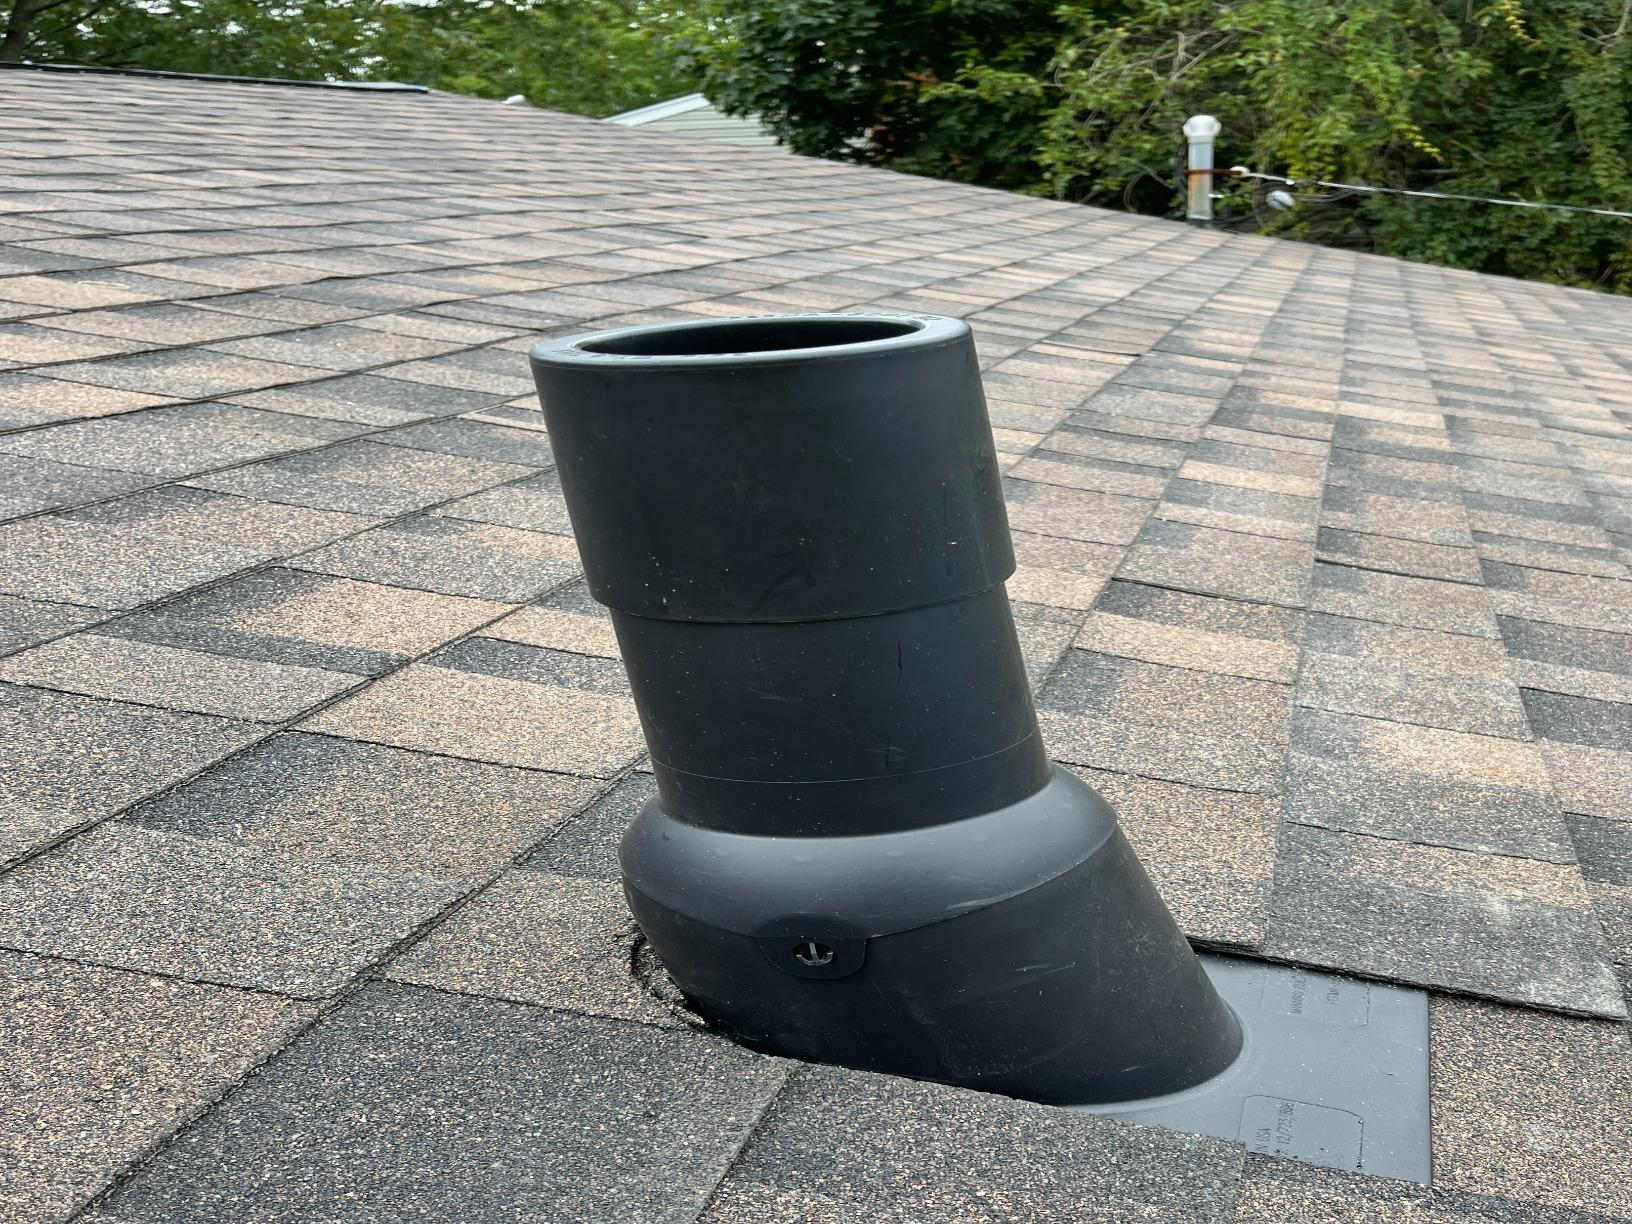 New Perma-Boot for Vent Pipe Installed in Kings Park, NY - After Photo